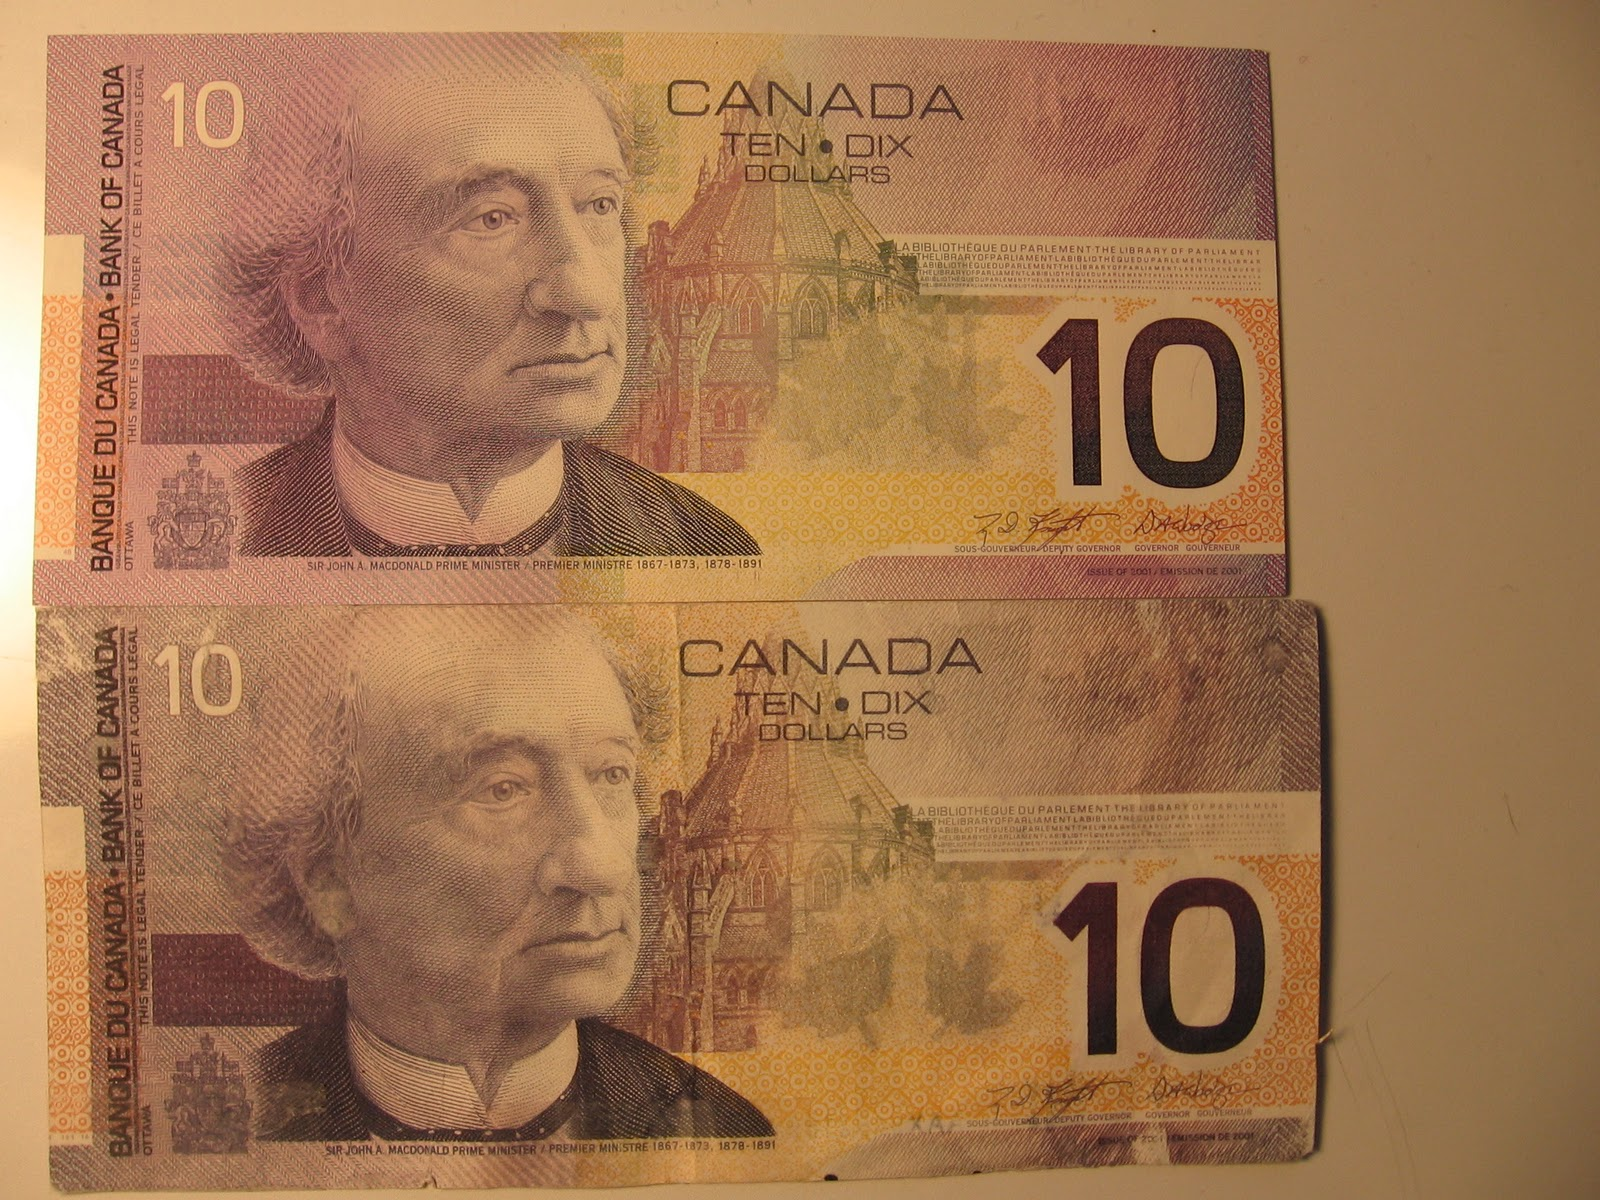 1973 canadian one dollar bill serial number